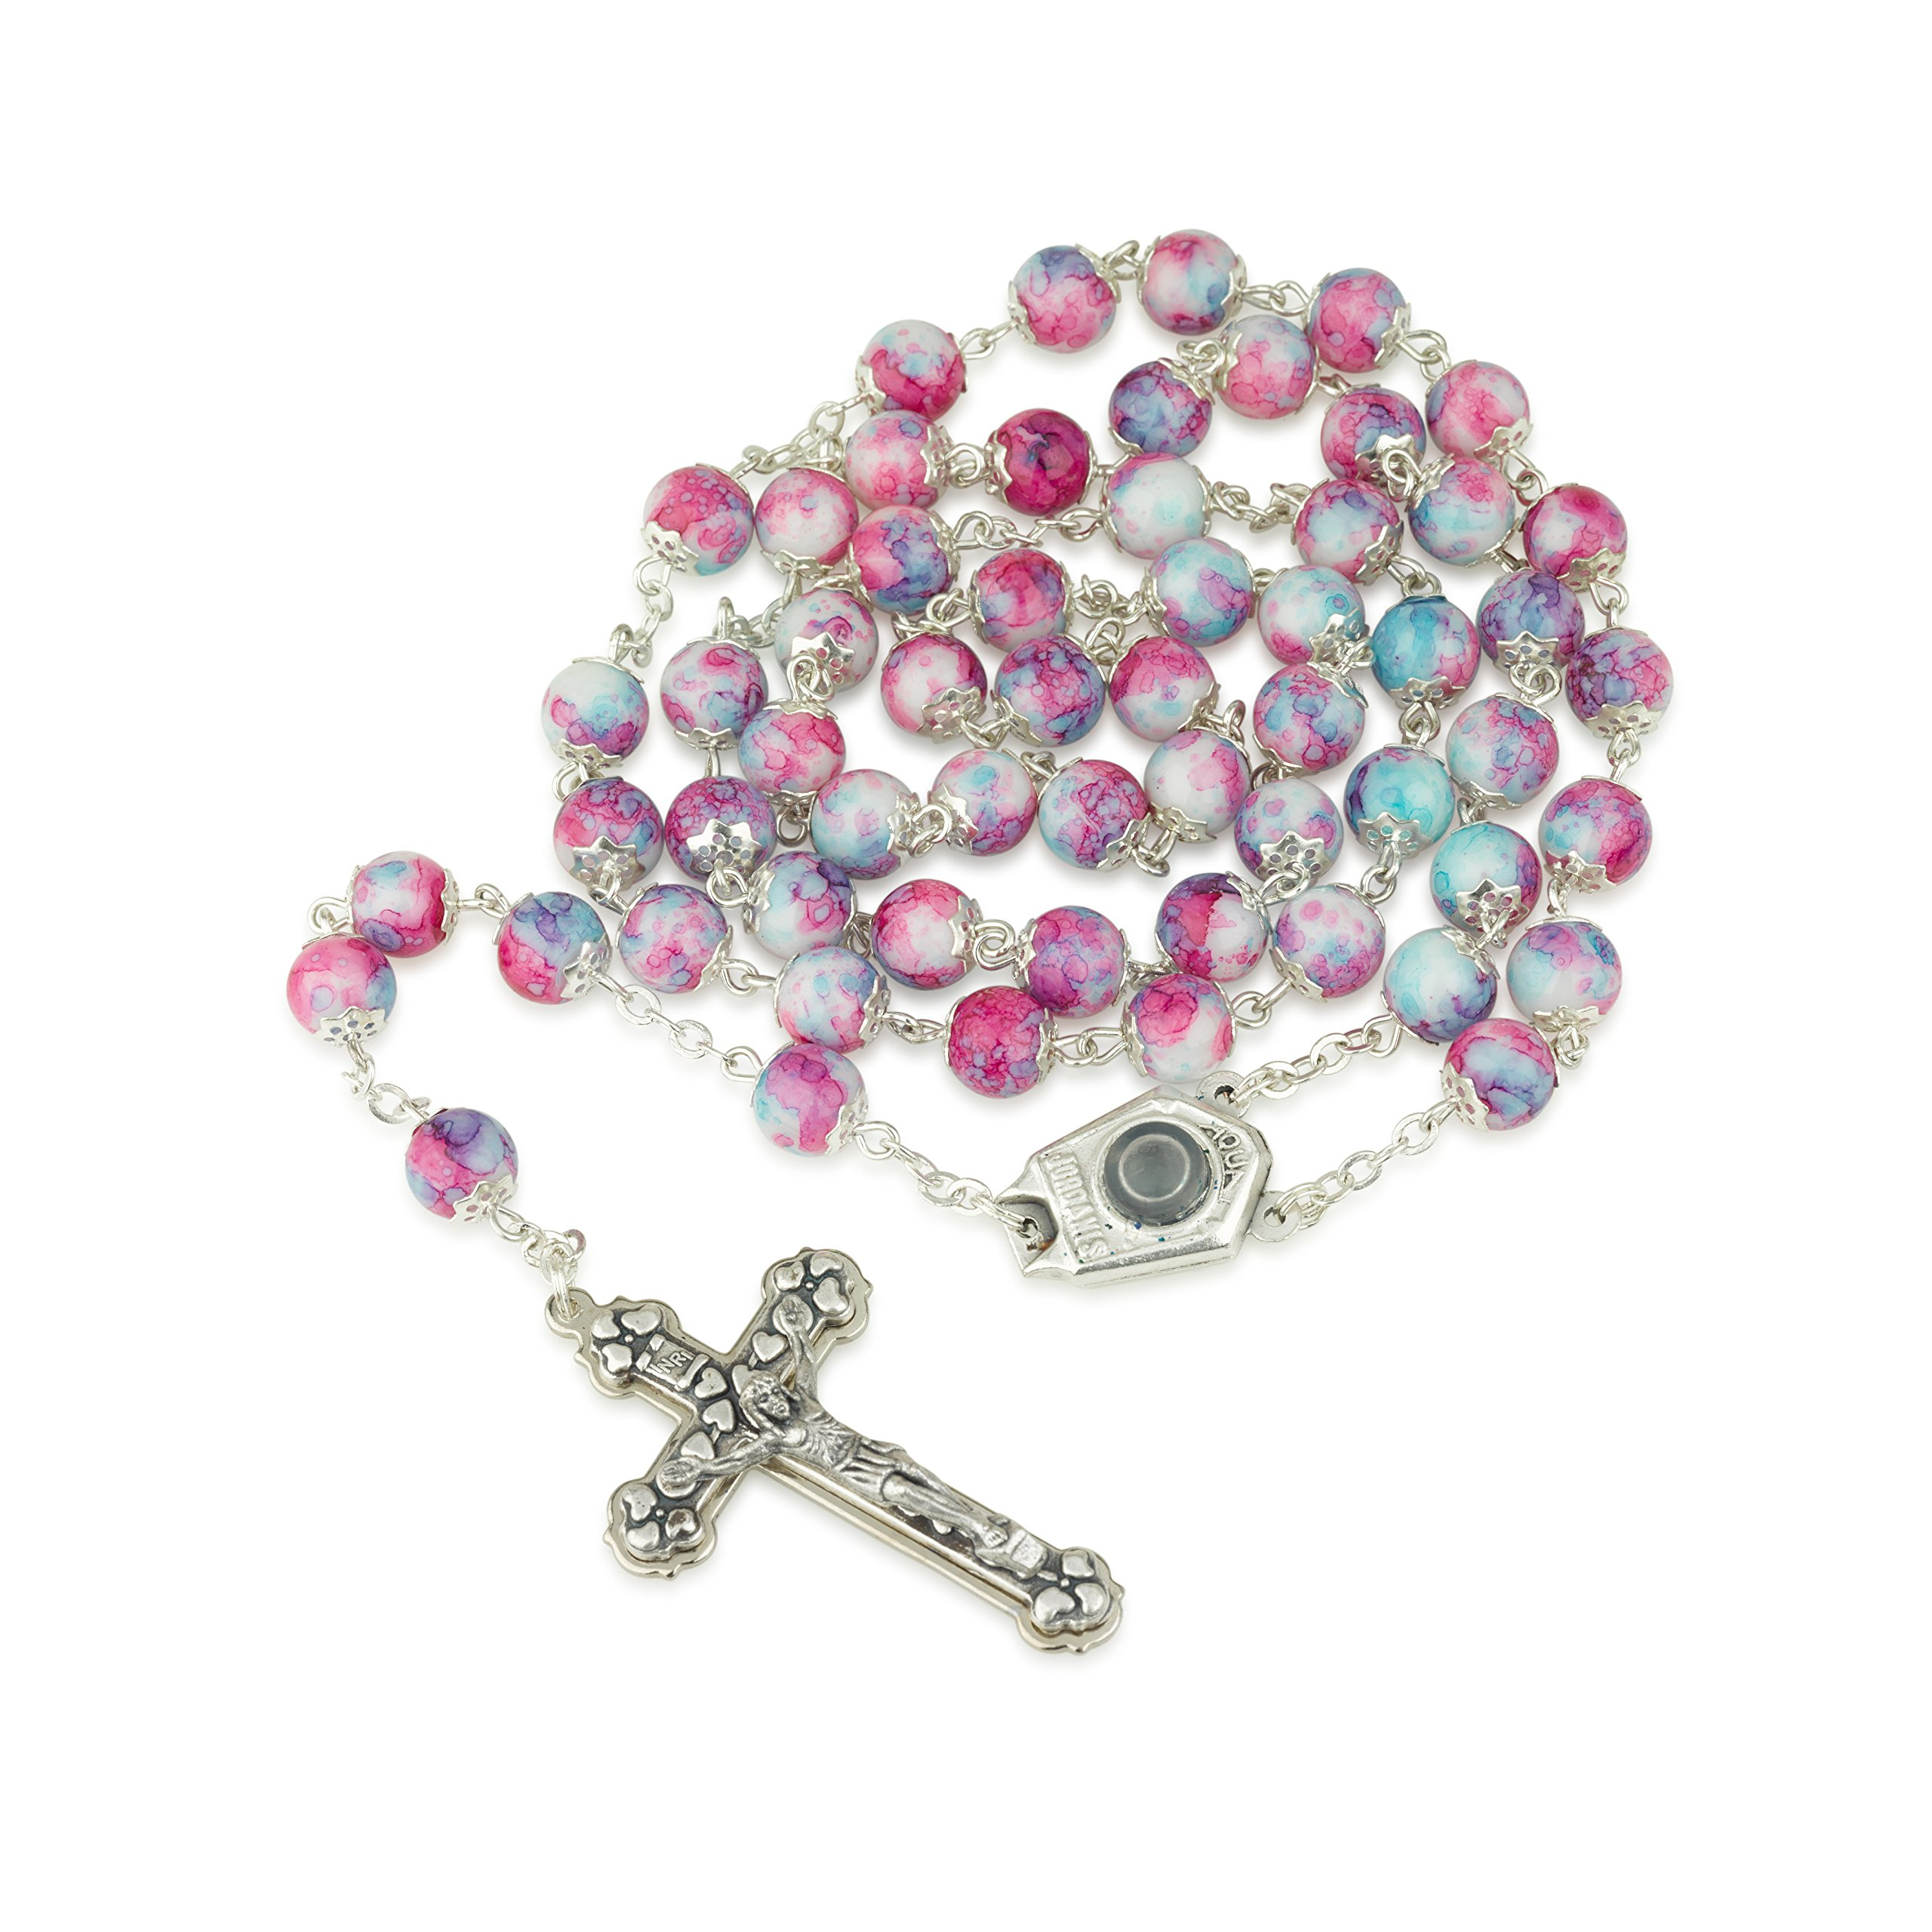 Marina Jewellery Hand Painted Glass Necklace Rosary, Jordan River Water Center, Silver Plate, Crucifix